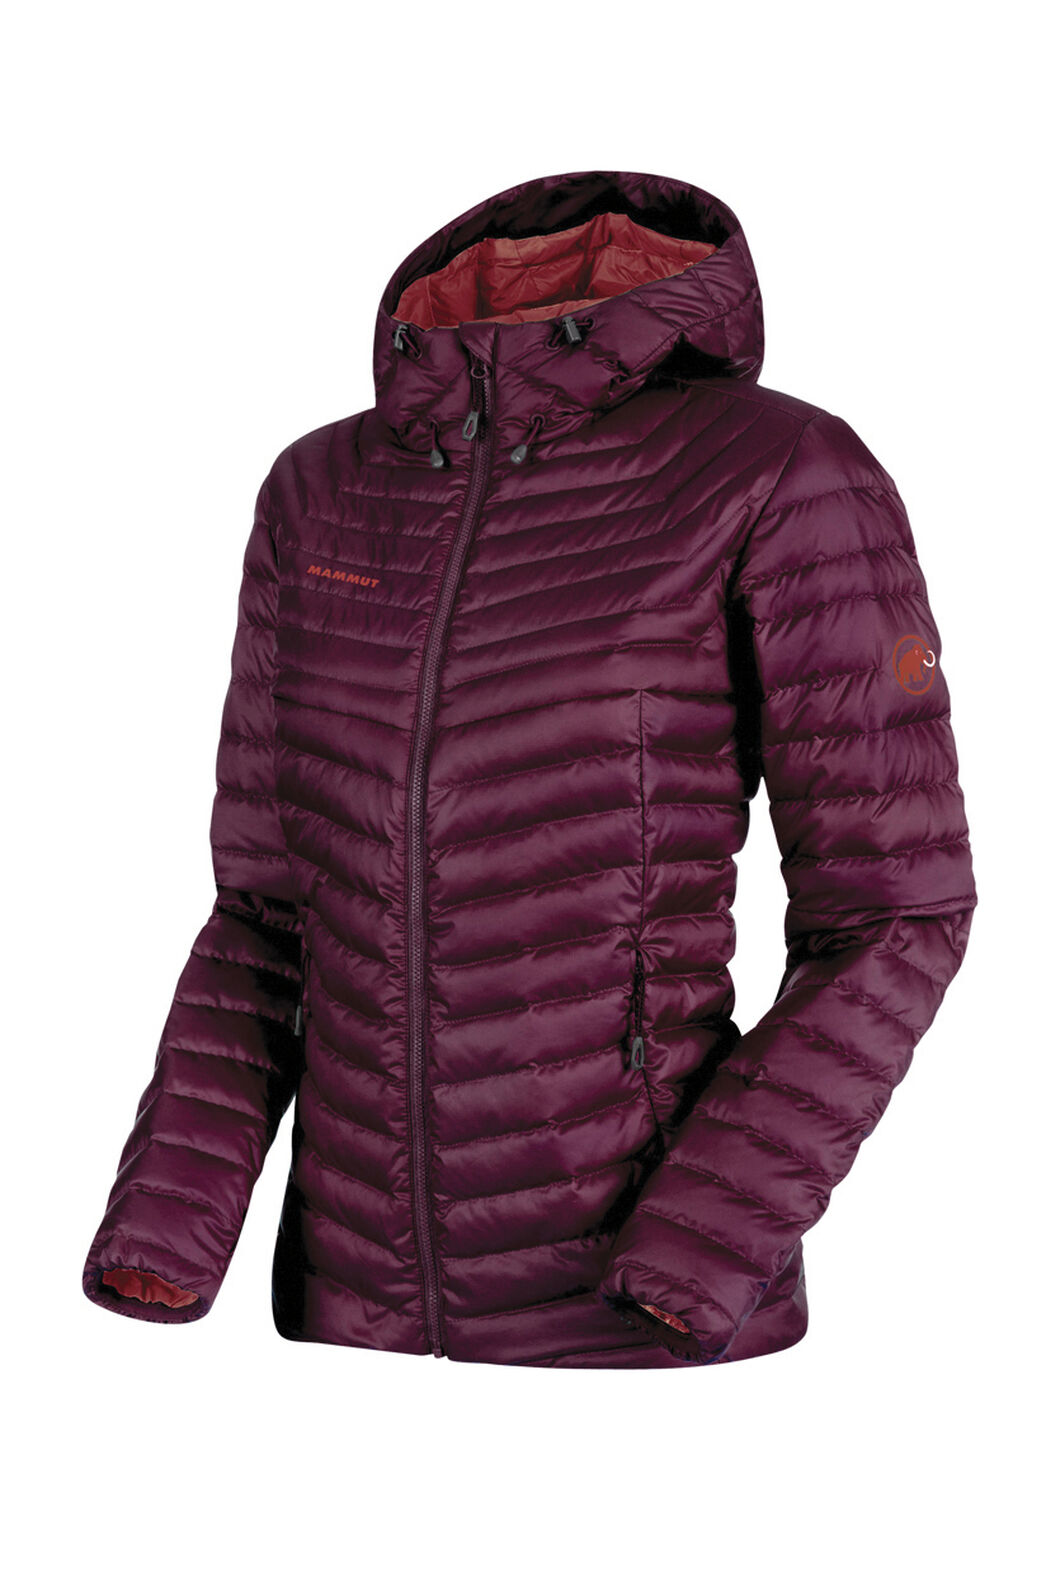 Mammut Convey Insulated Hooded Jacket - Women's, GRAPE, hi-res